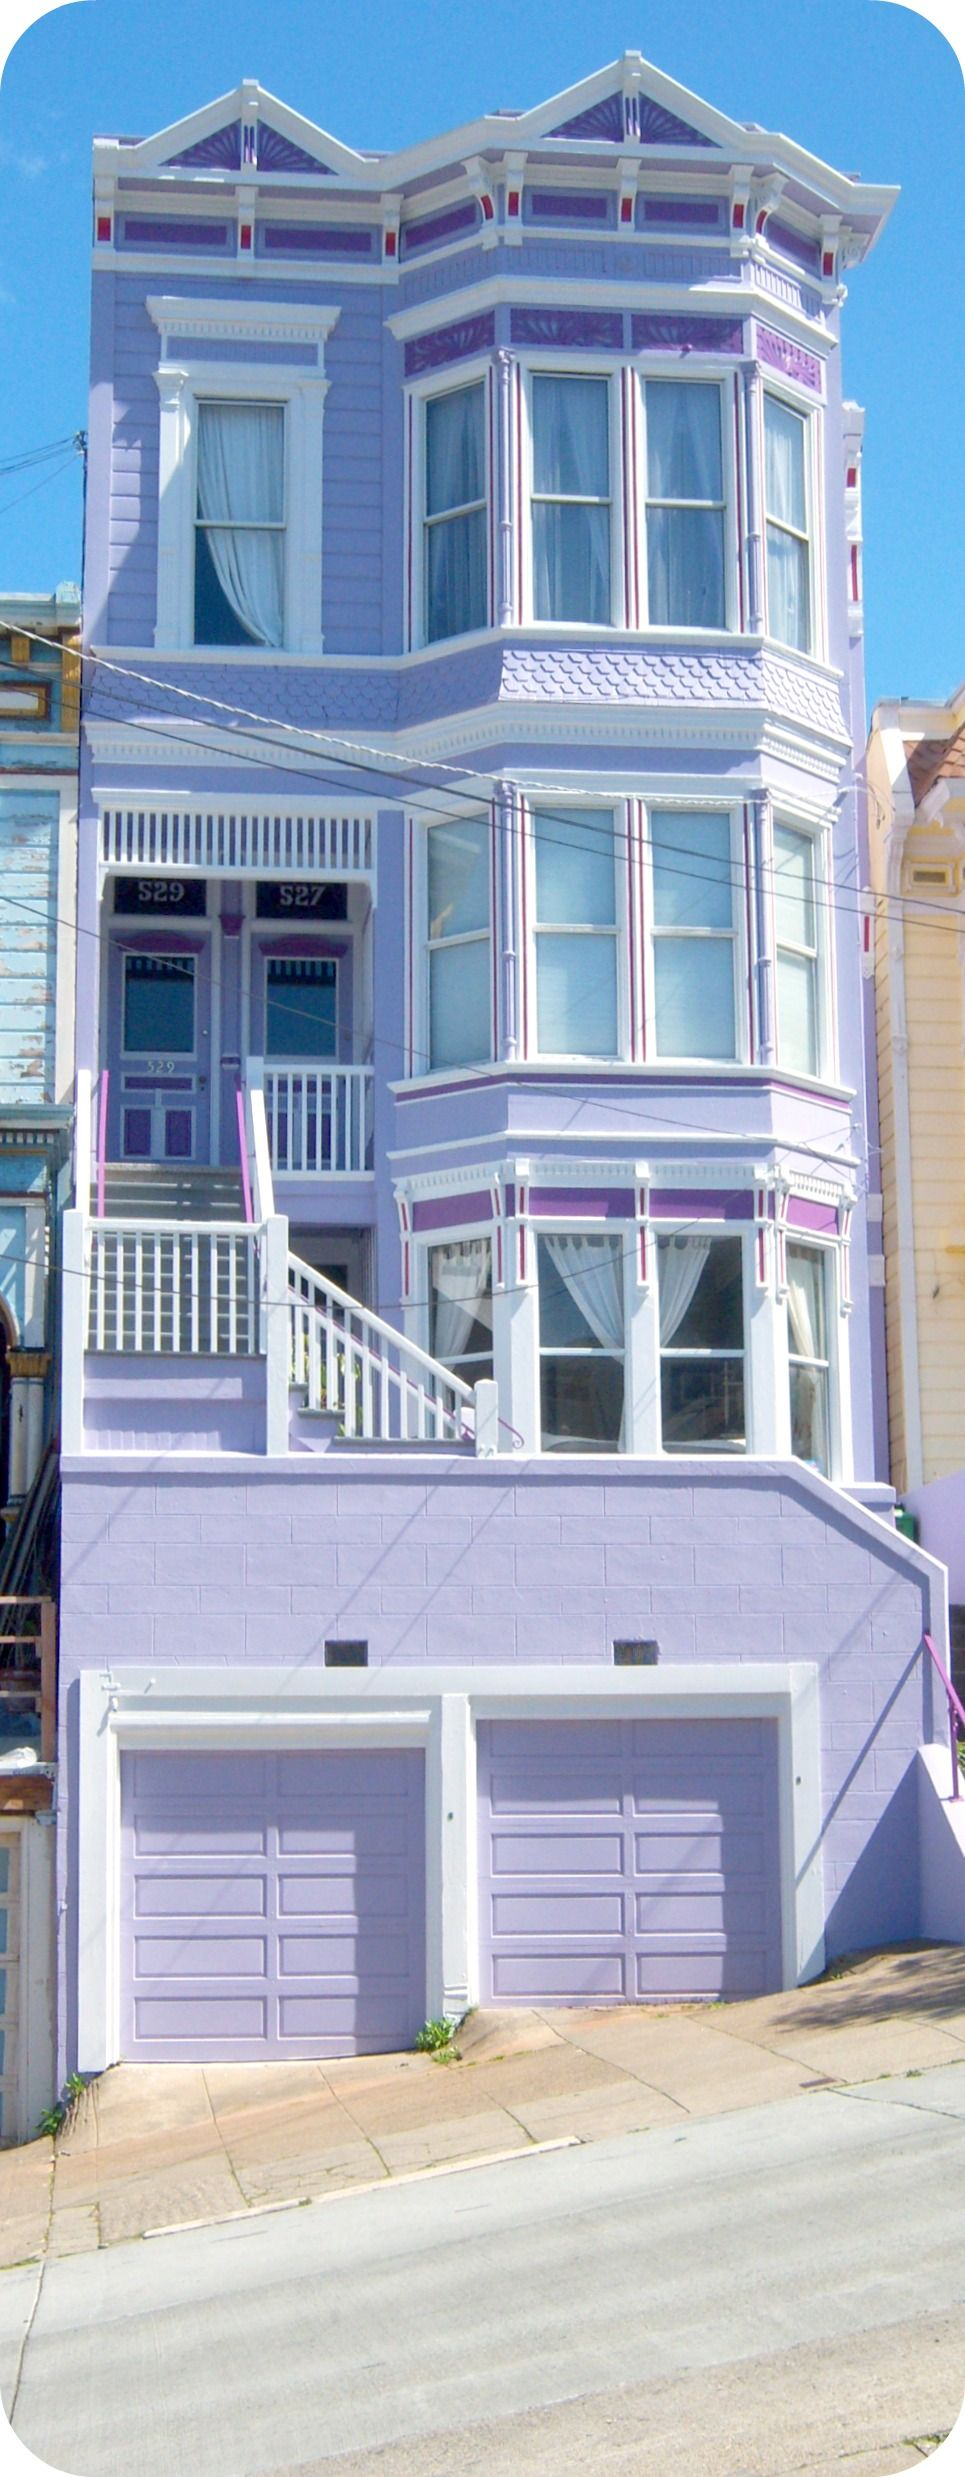 Modern Townhouse Townhouse Designs San Francisco: Beautiful San Francisco Home. Mighty Purple Hill